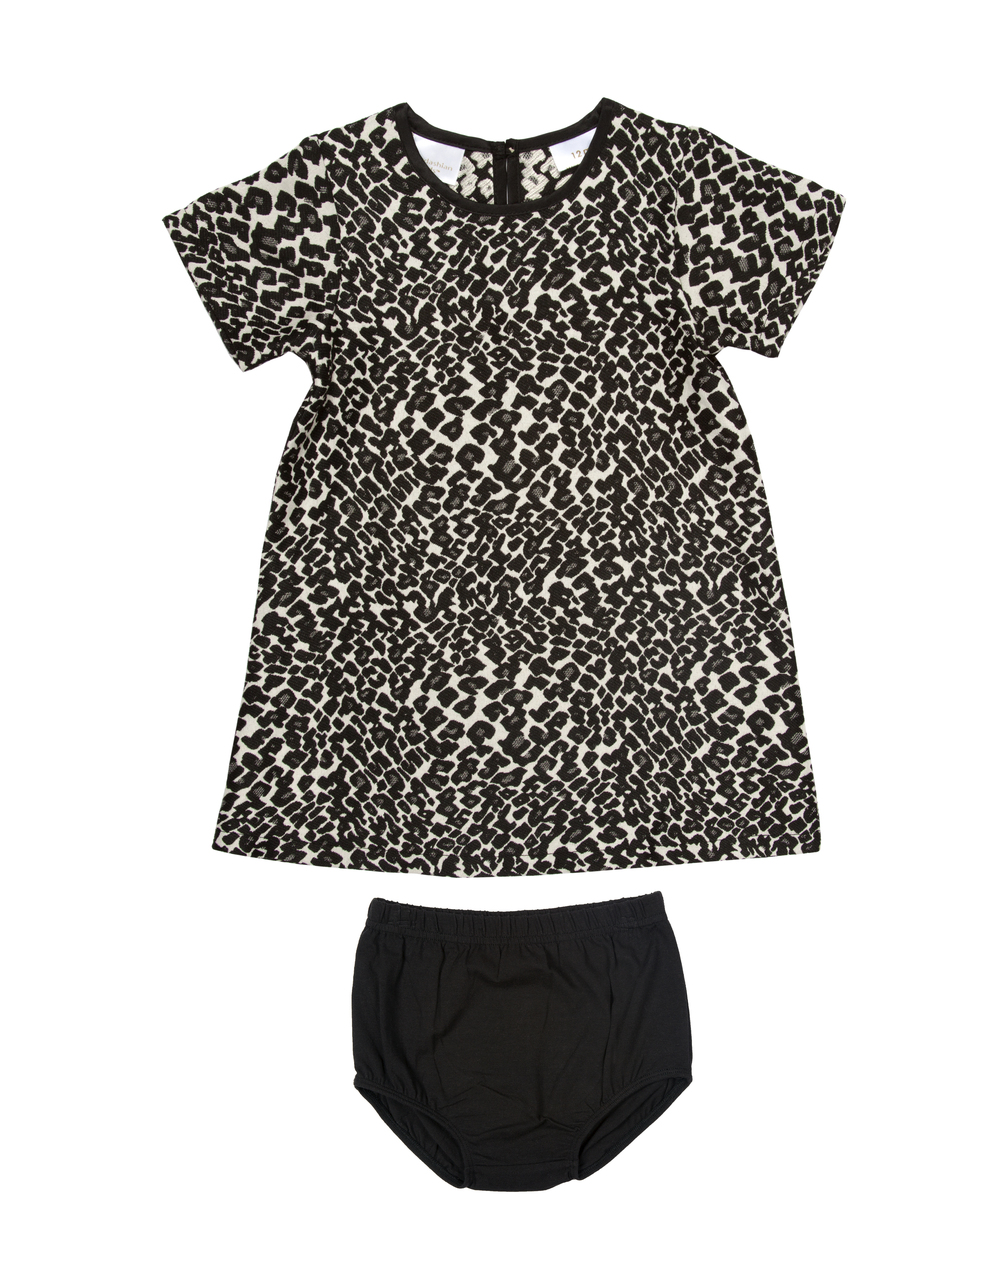 Animal Print Outfit Infant.jpg